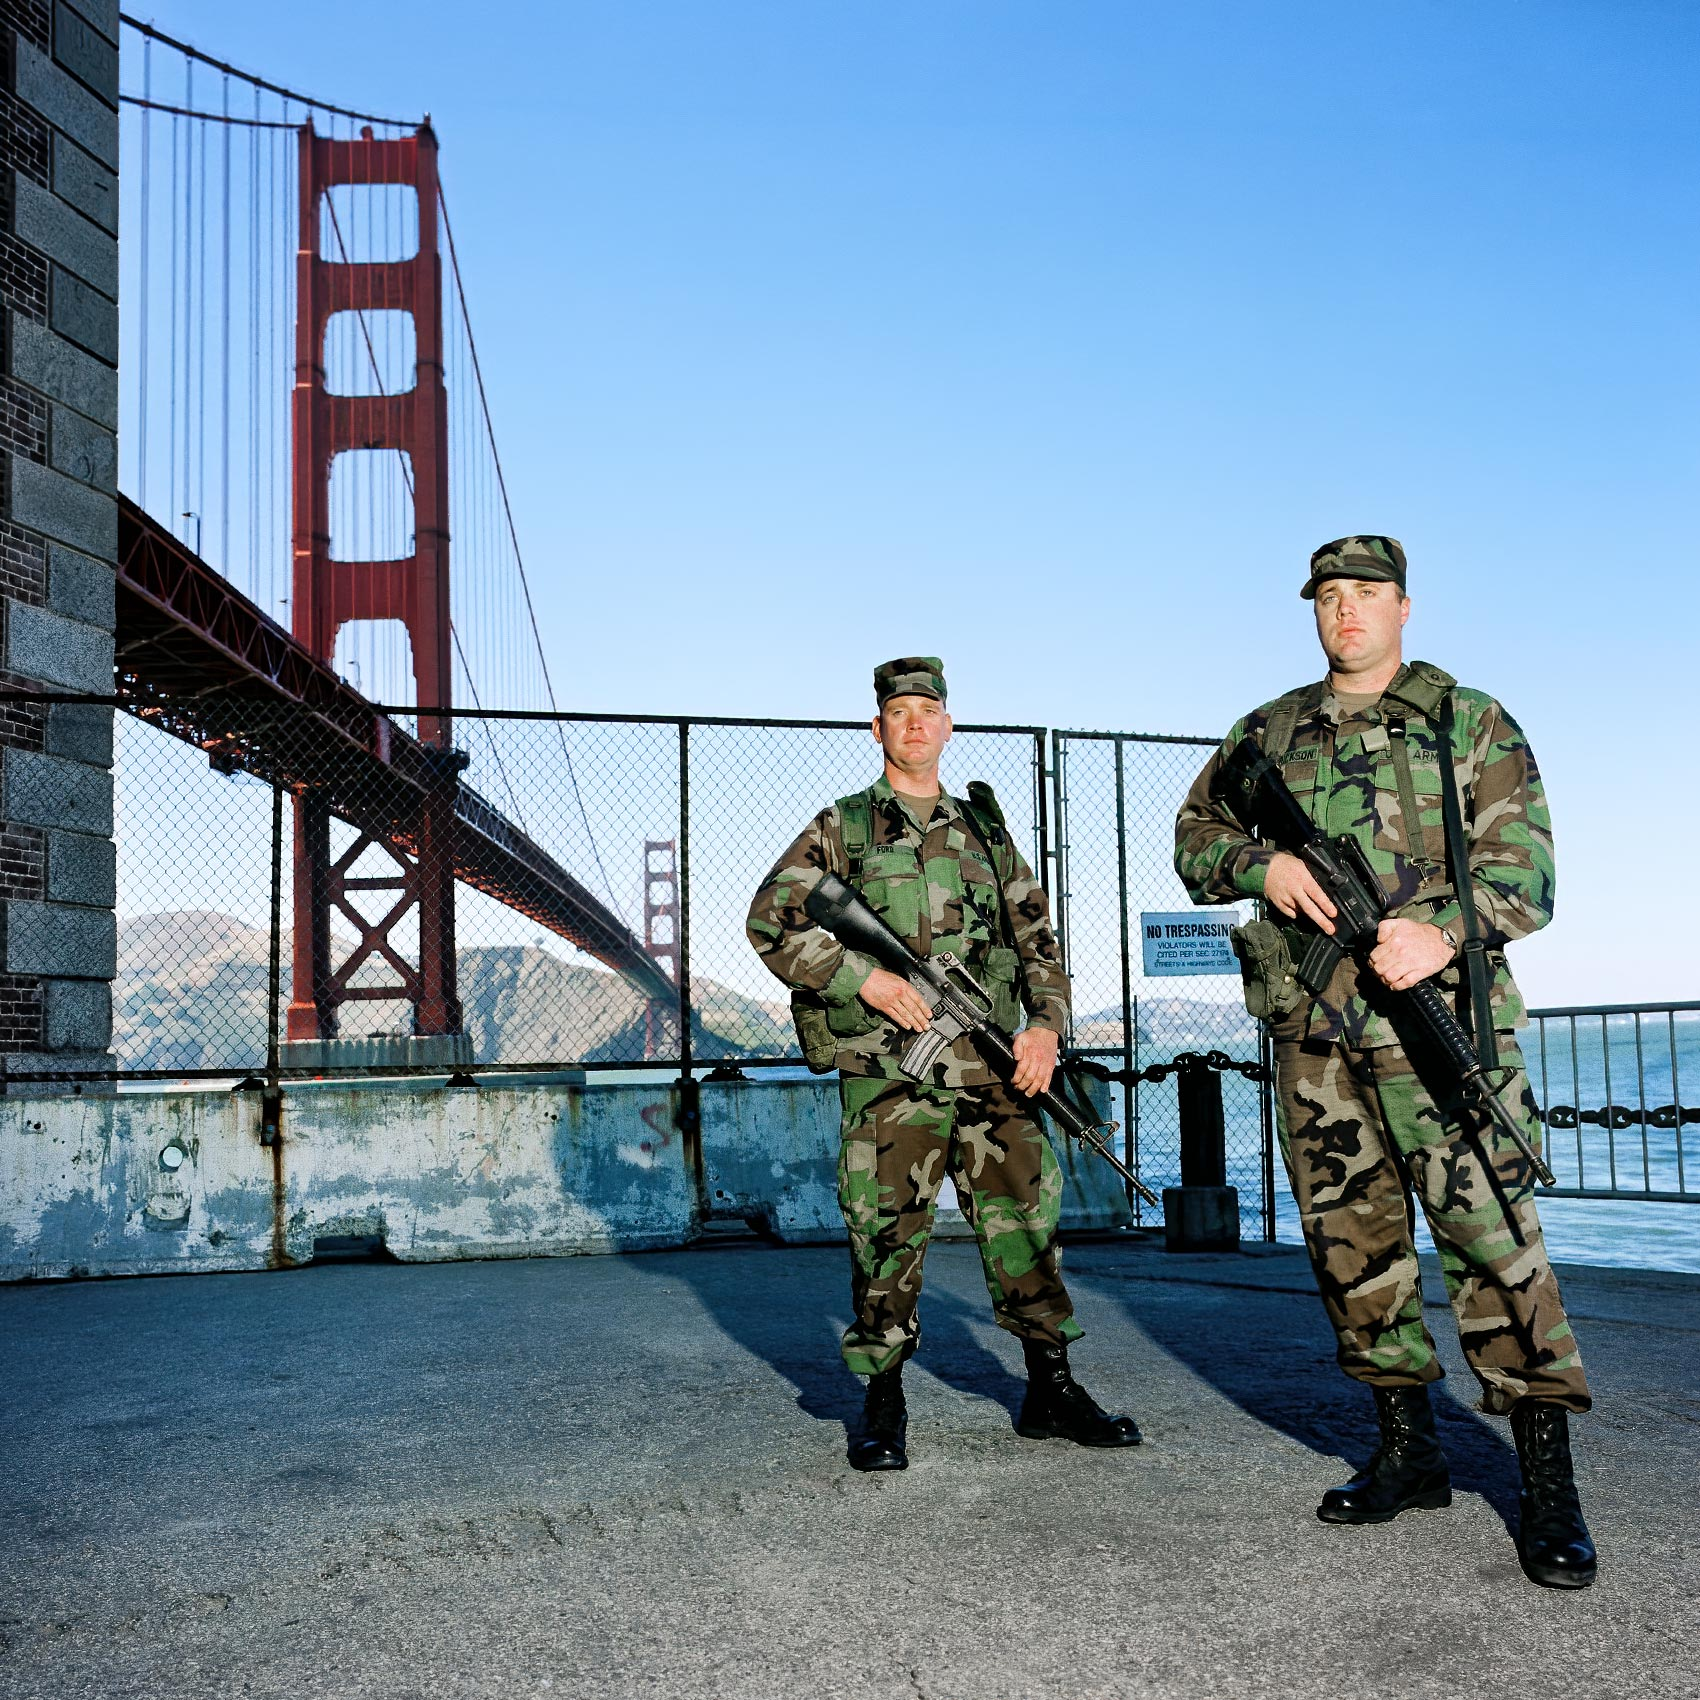 two-US-soldiers-guard-the-golden-gate-bridge-in-sanfrancisco-california